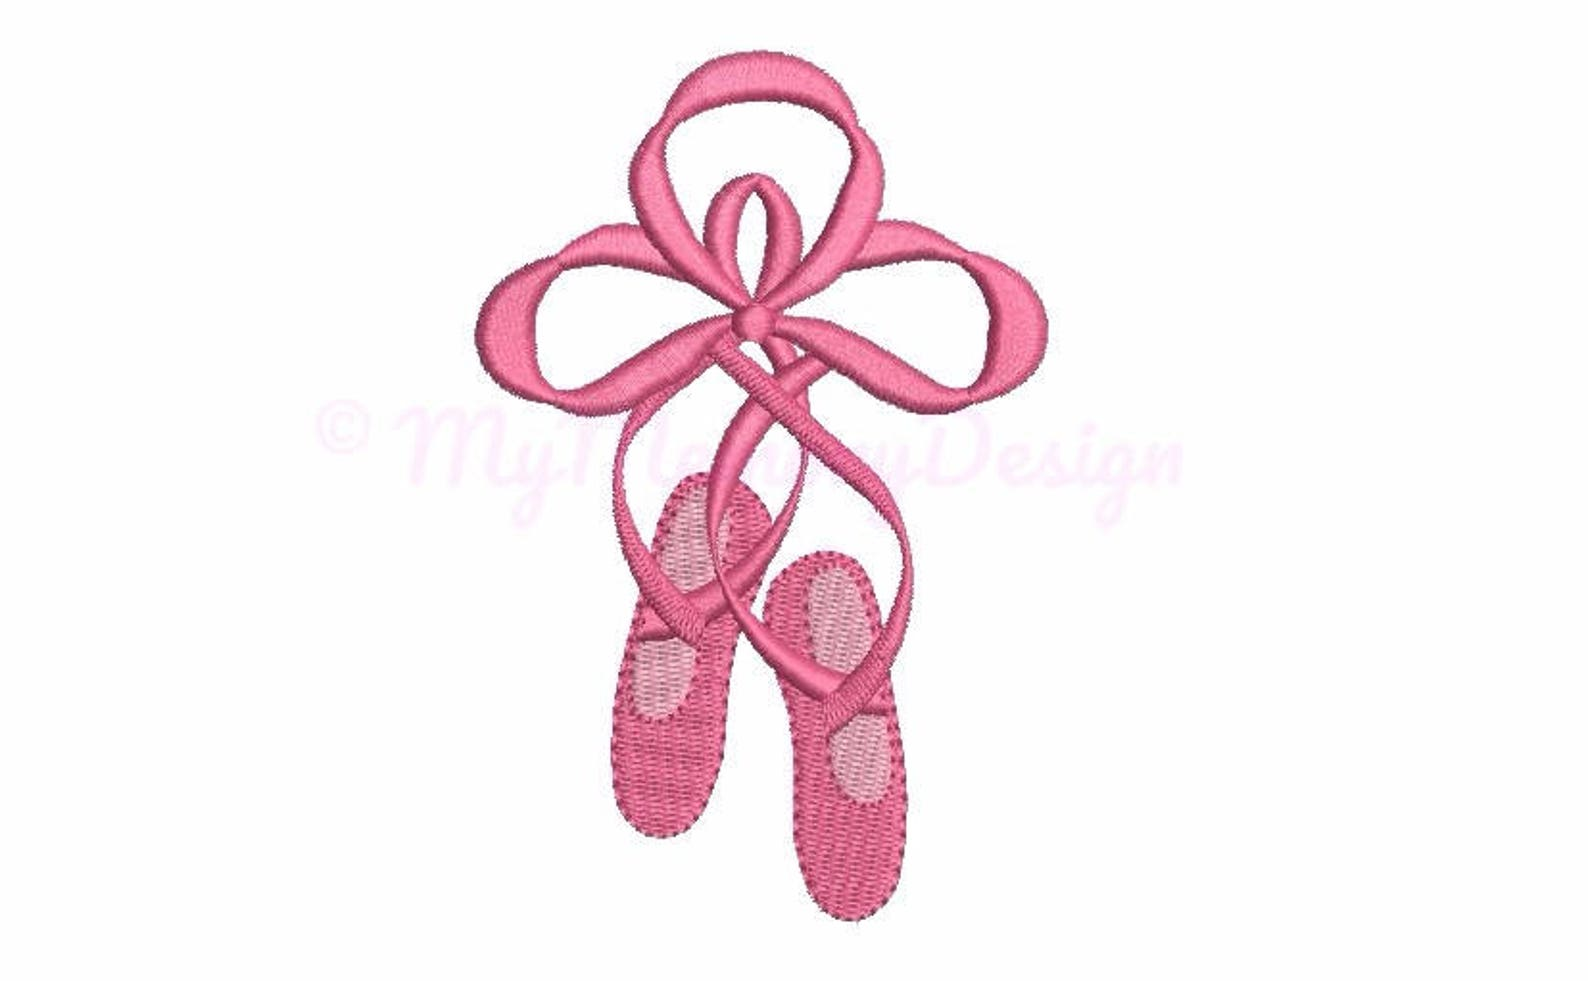 ballet shoes embroidery design - mini embroidery - machine embroidery - digital file - instant download - pes hus jef vip vp3 xx